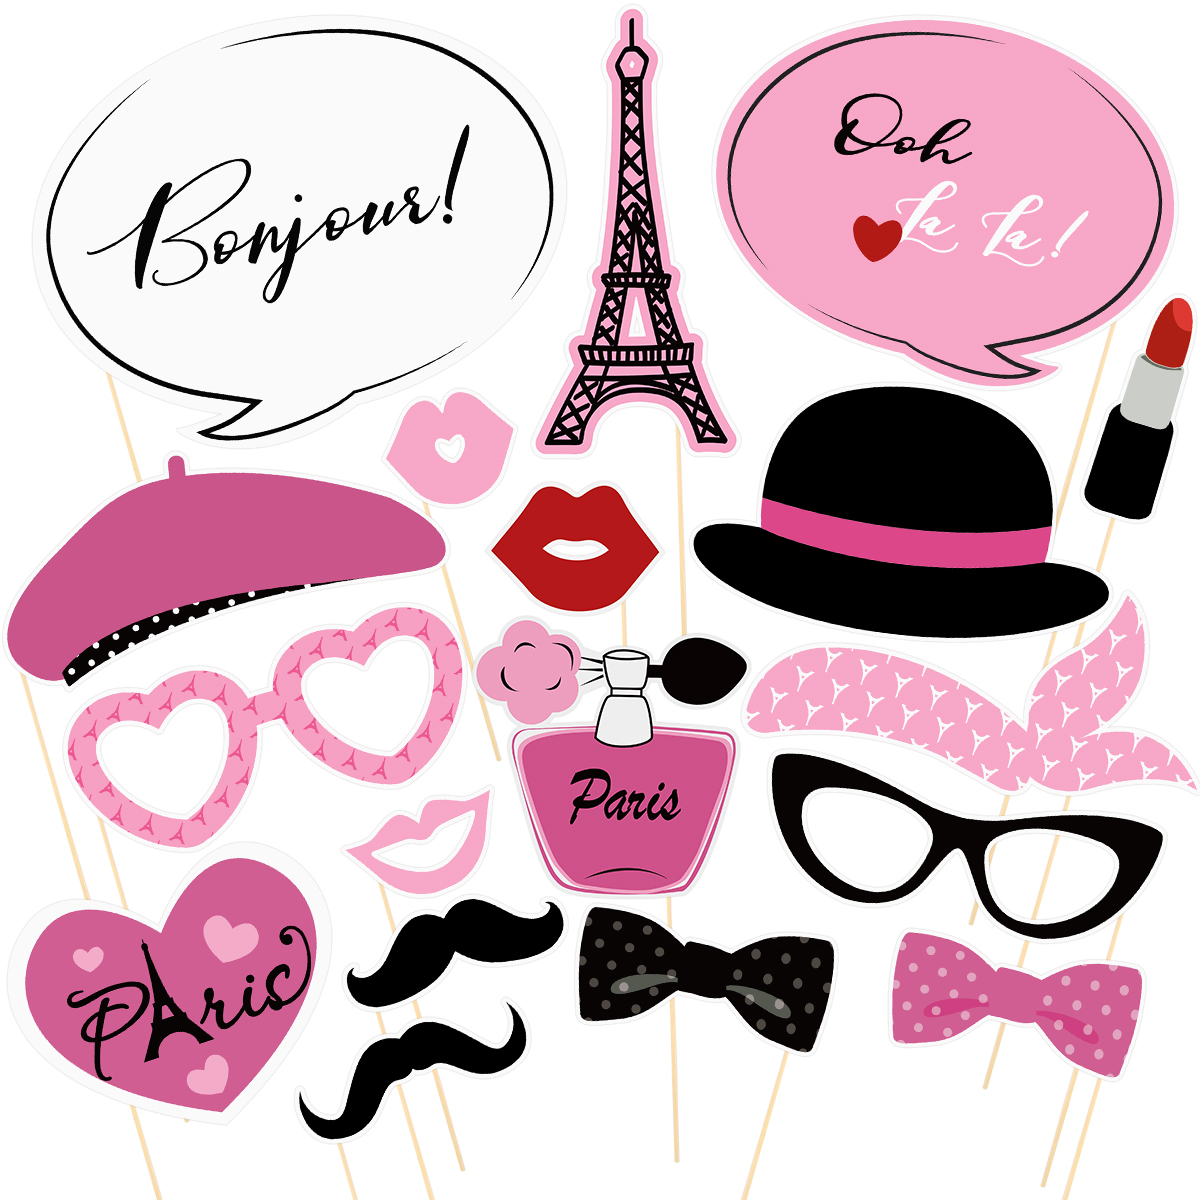 Amosfun 18PCS Paris Party Photo Props Pink Creative Cute Party Supplies Costume Props Photo Props For Festival Holiday Party